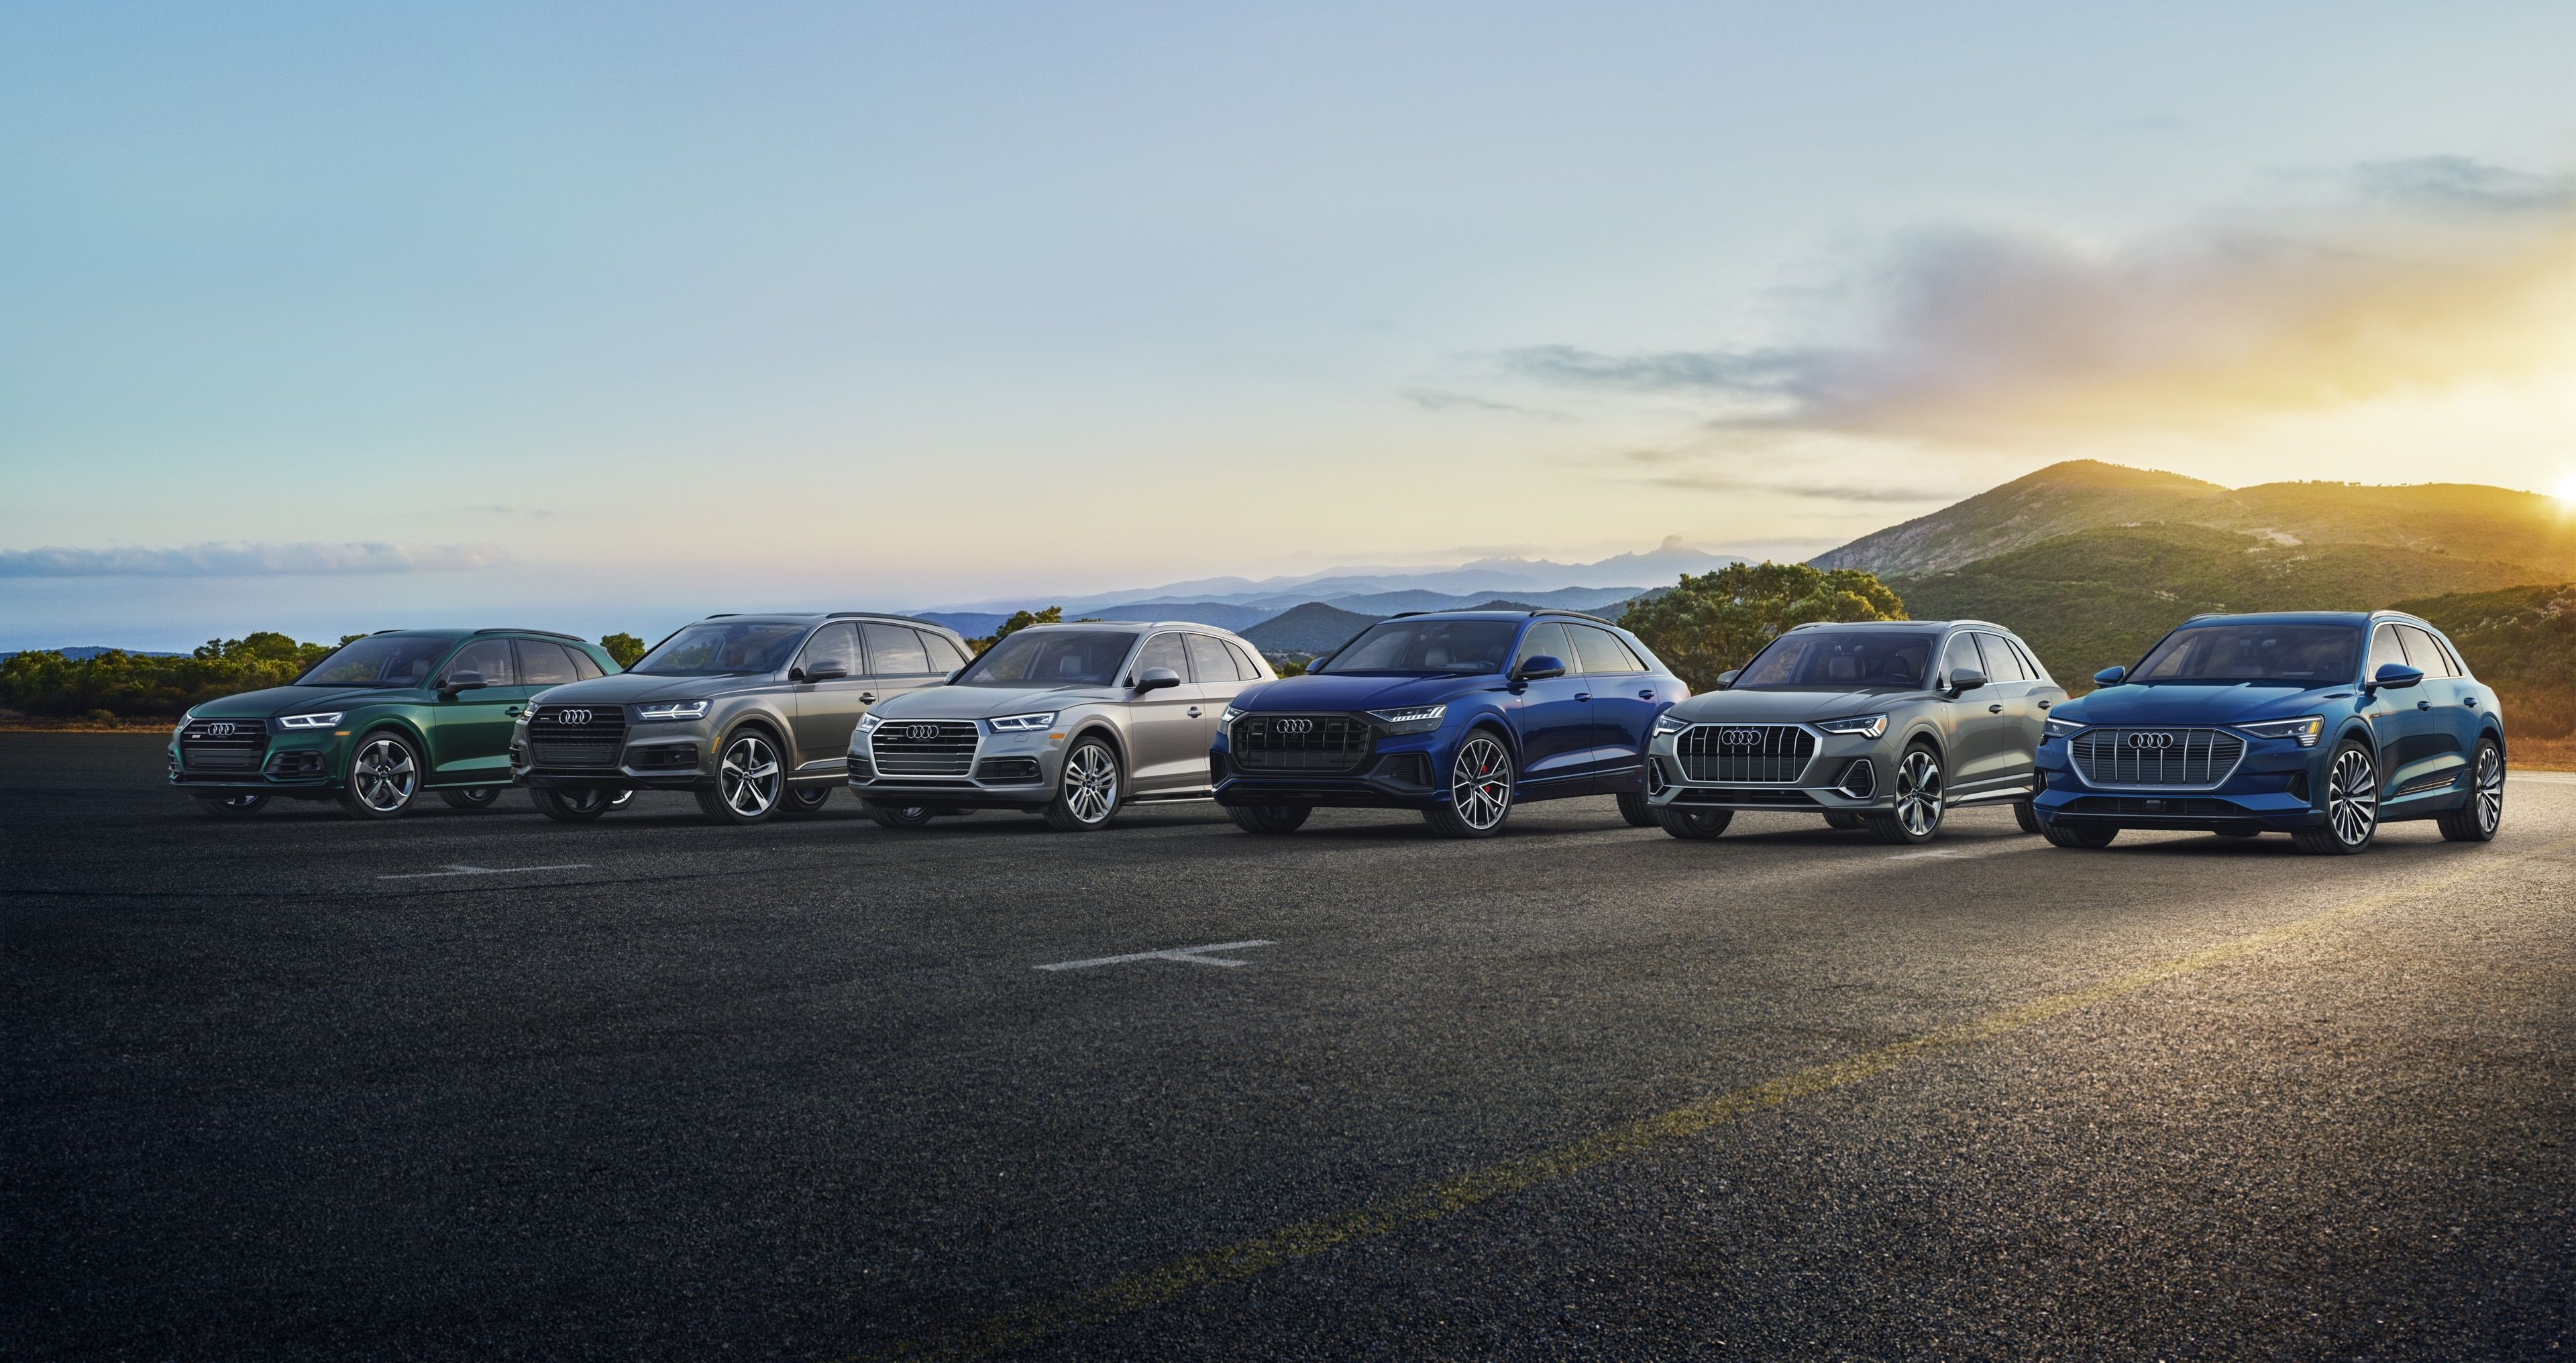 Line up of all the Audi SUVs